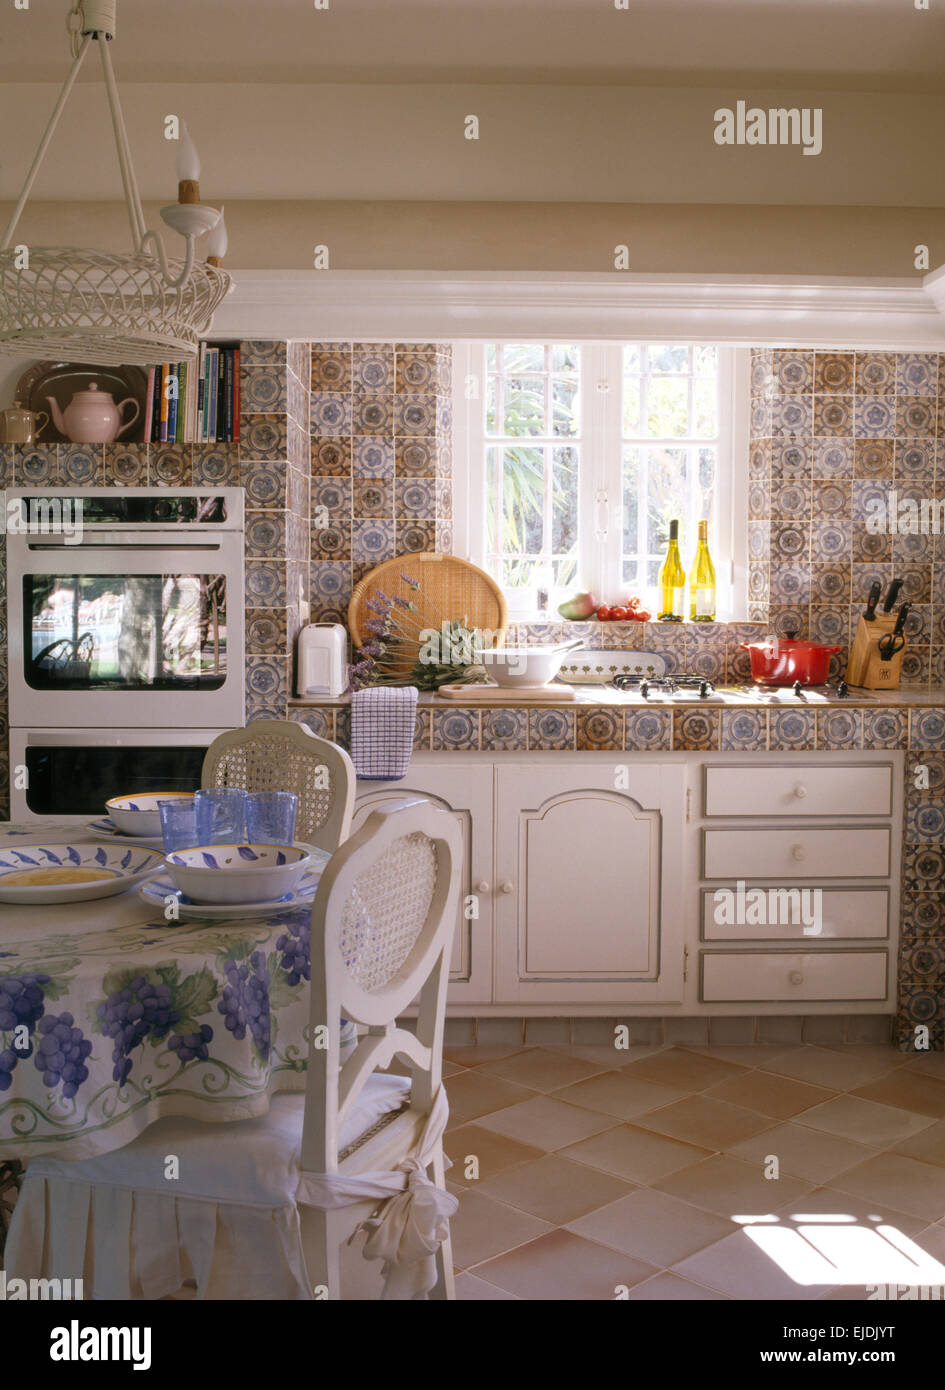 French Country Kitchen Tile Flooring patterned wall tiles and worktop in french country kitchen with